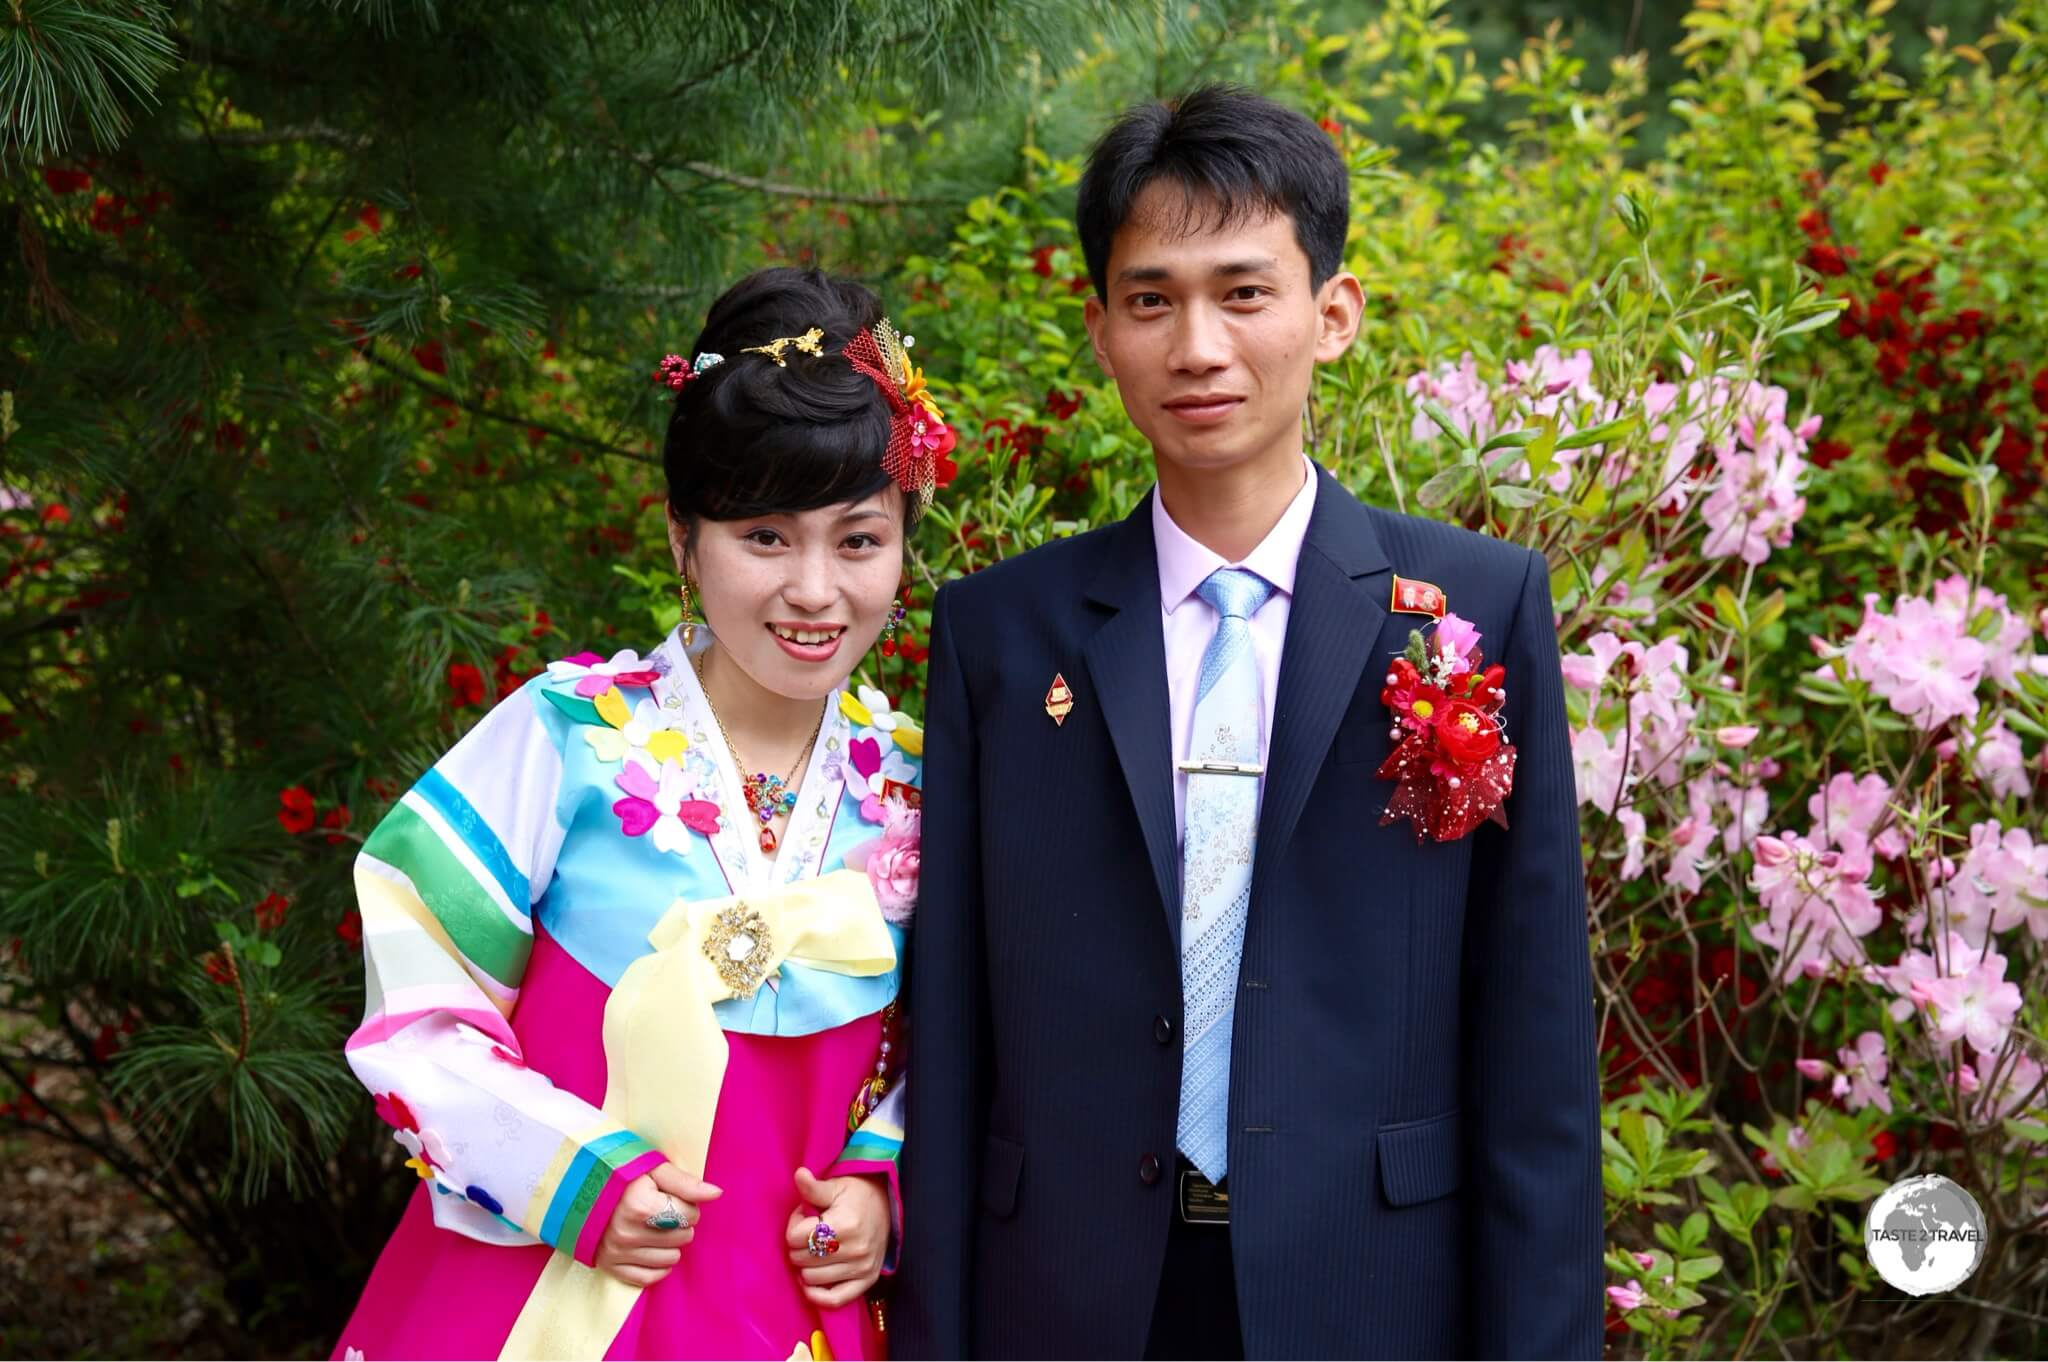 A bride and groom visiting a park near Pyongyang.